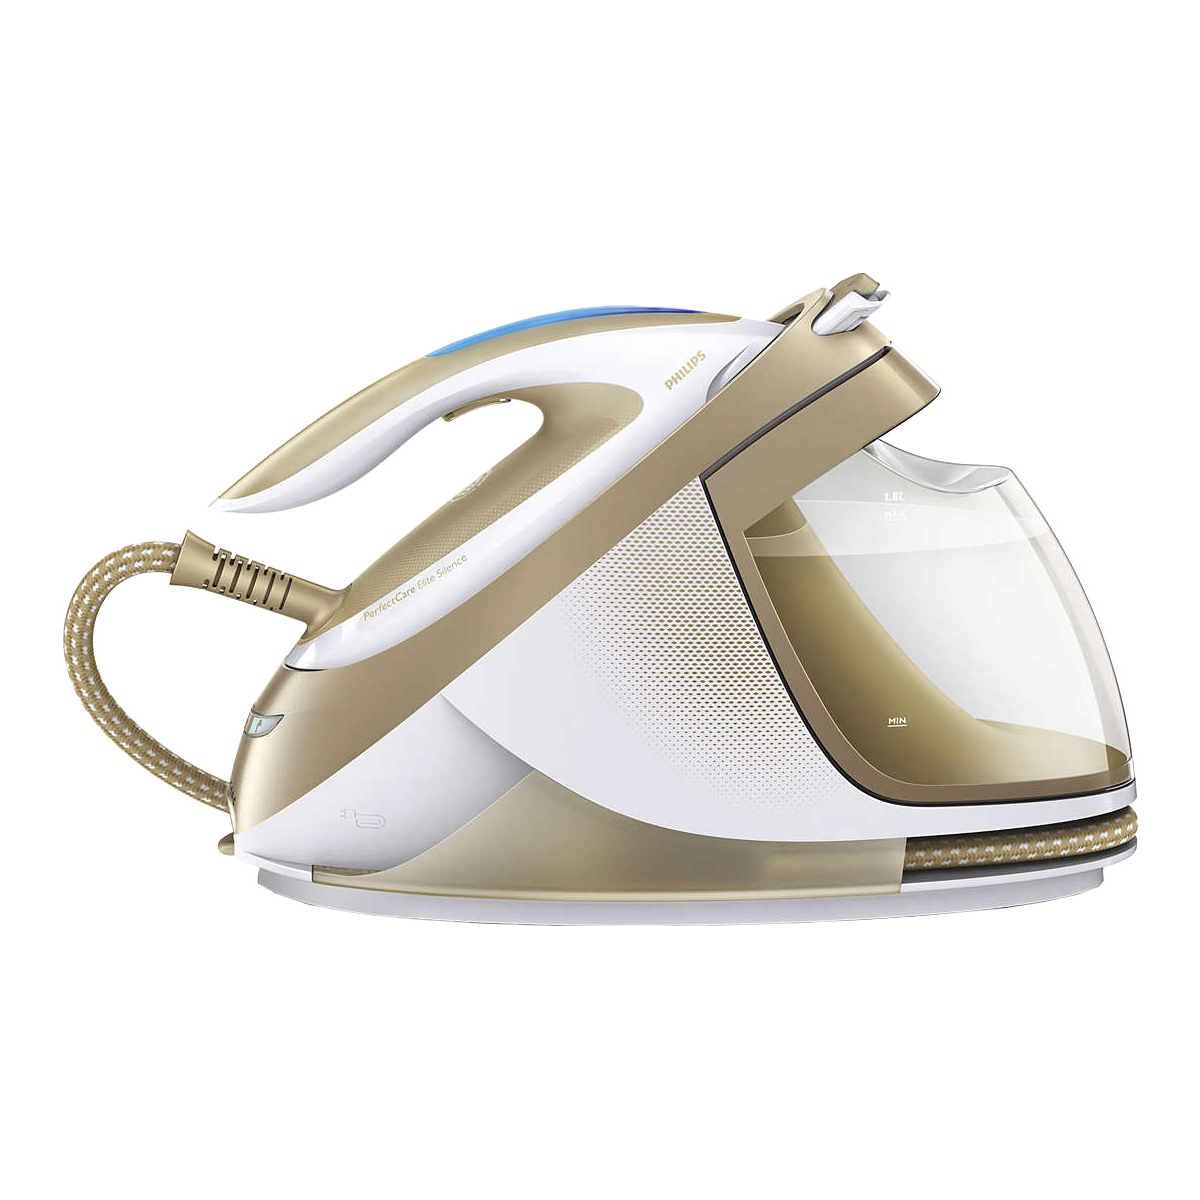 Philips GC9642 Steam Generator Iron